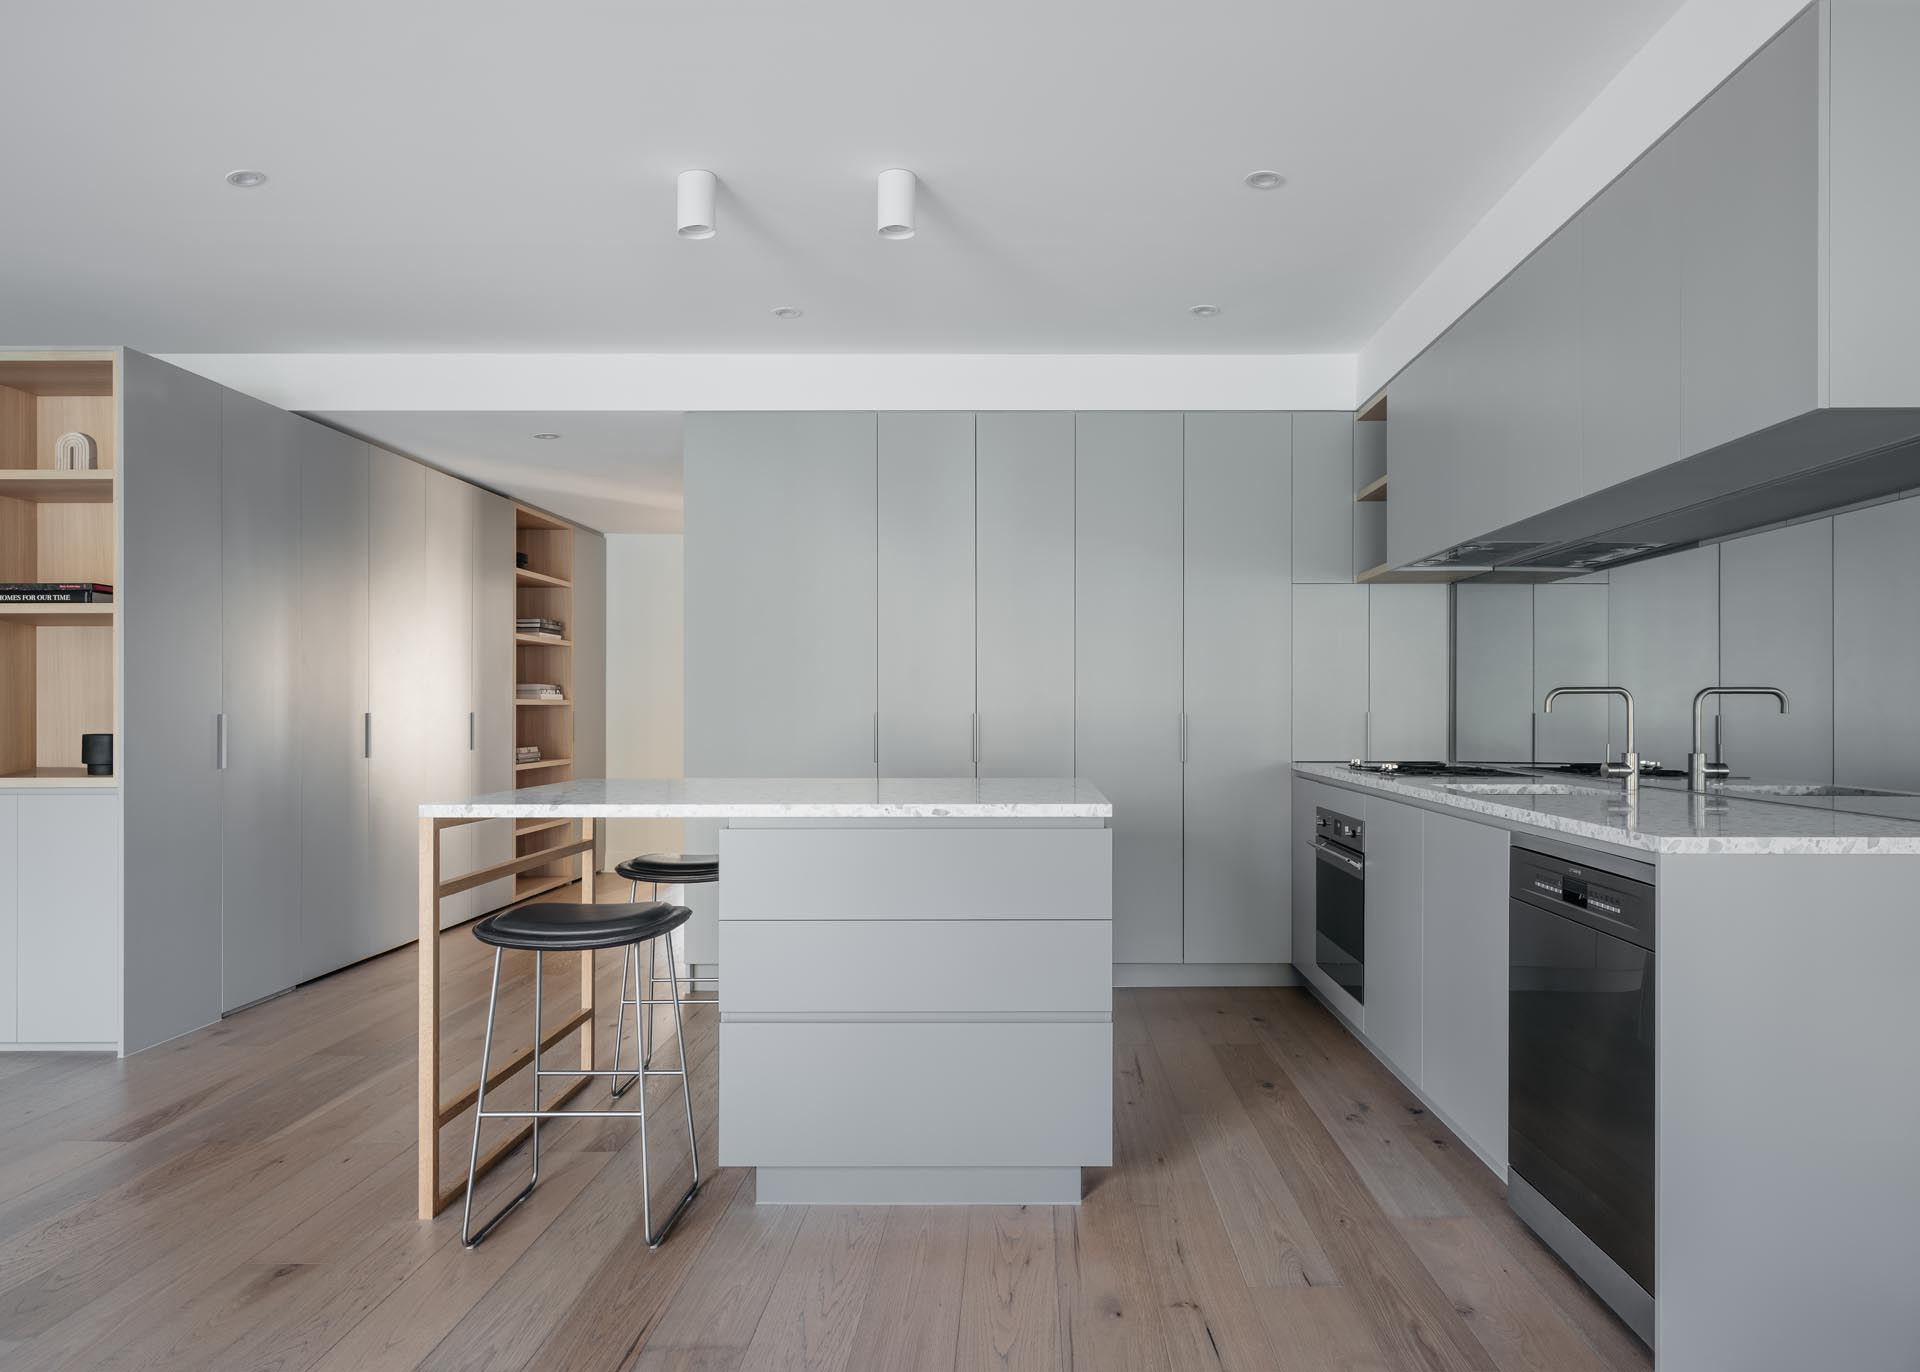 A modern kitchen with minimalist light gray cabinets and an island.